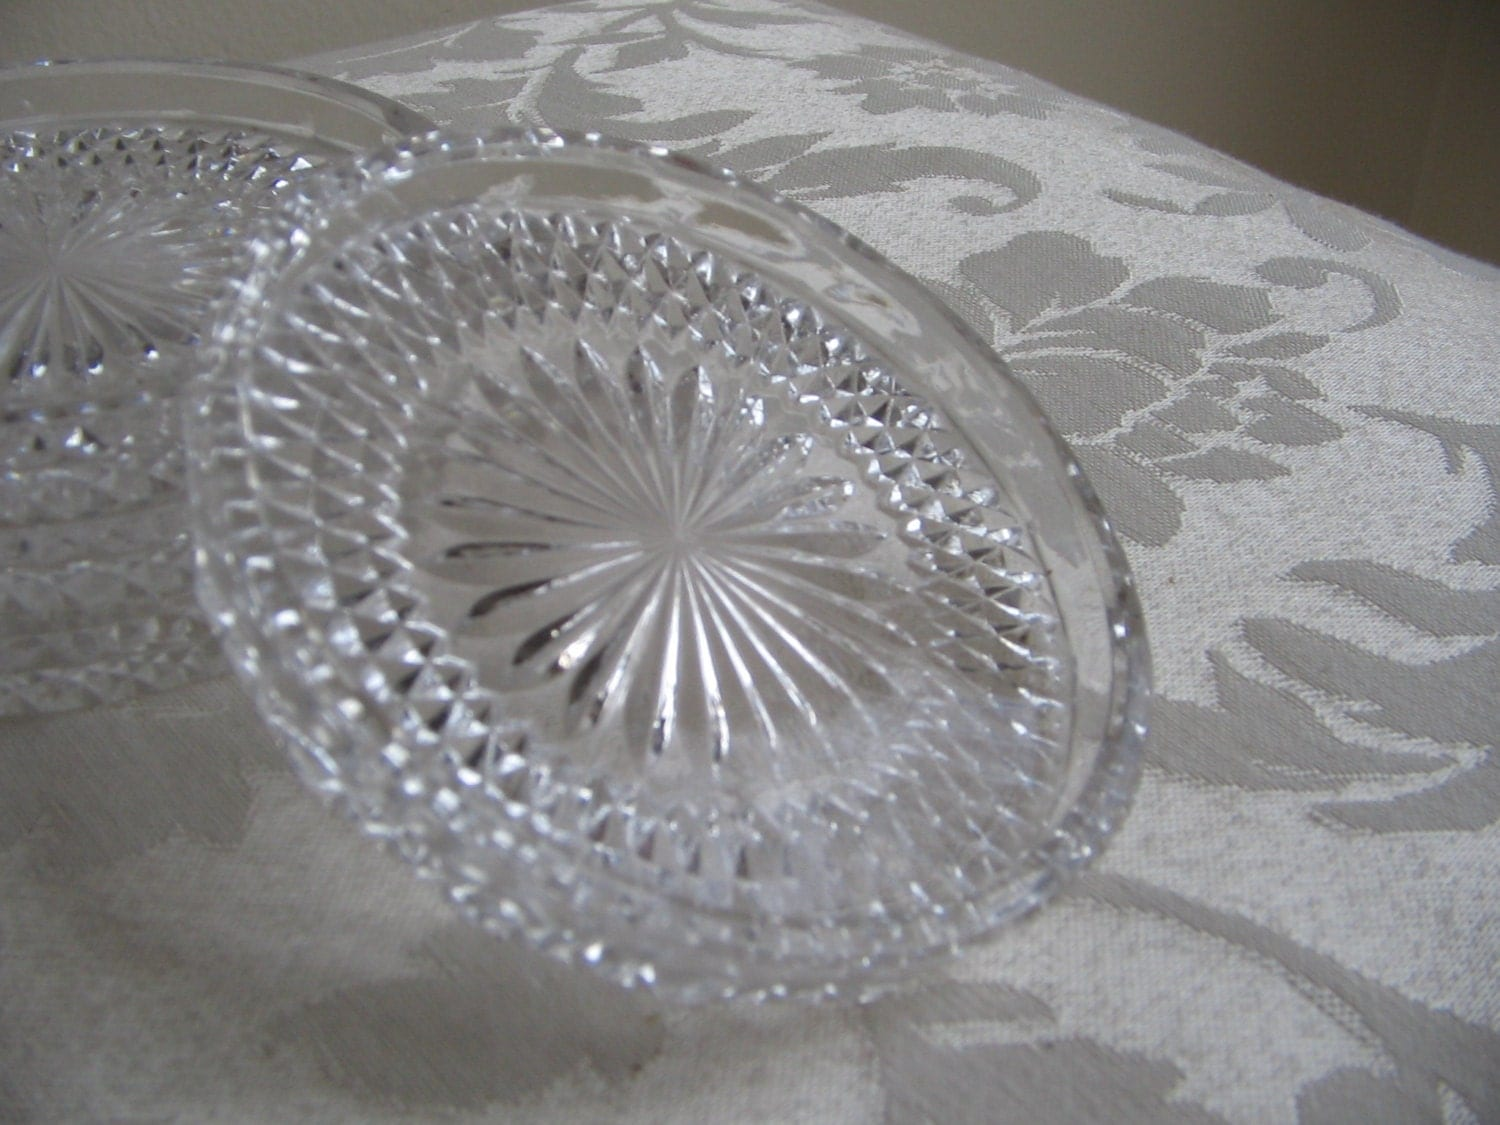 Vintage Crystal Coasters Set Of 4 Starburst Pattern Clear